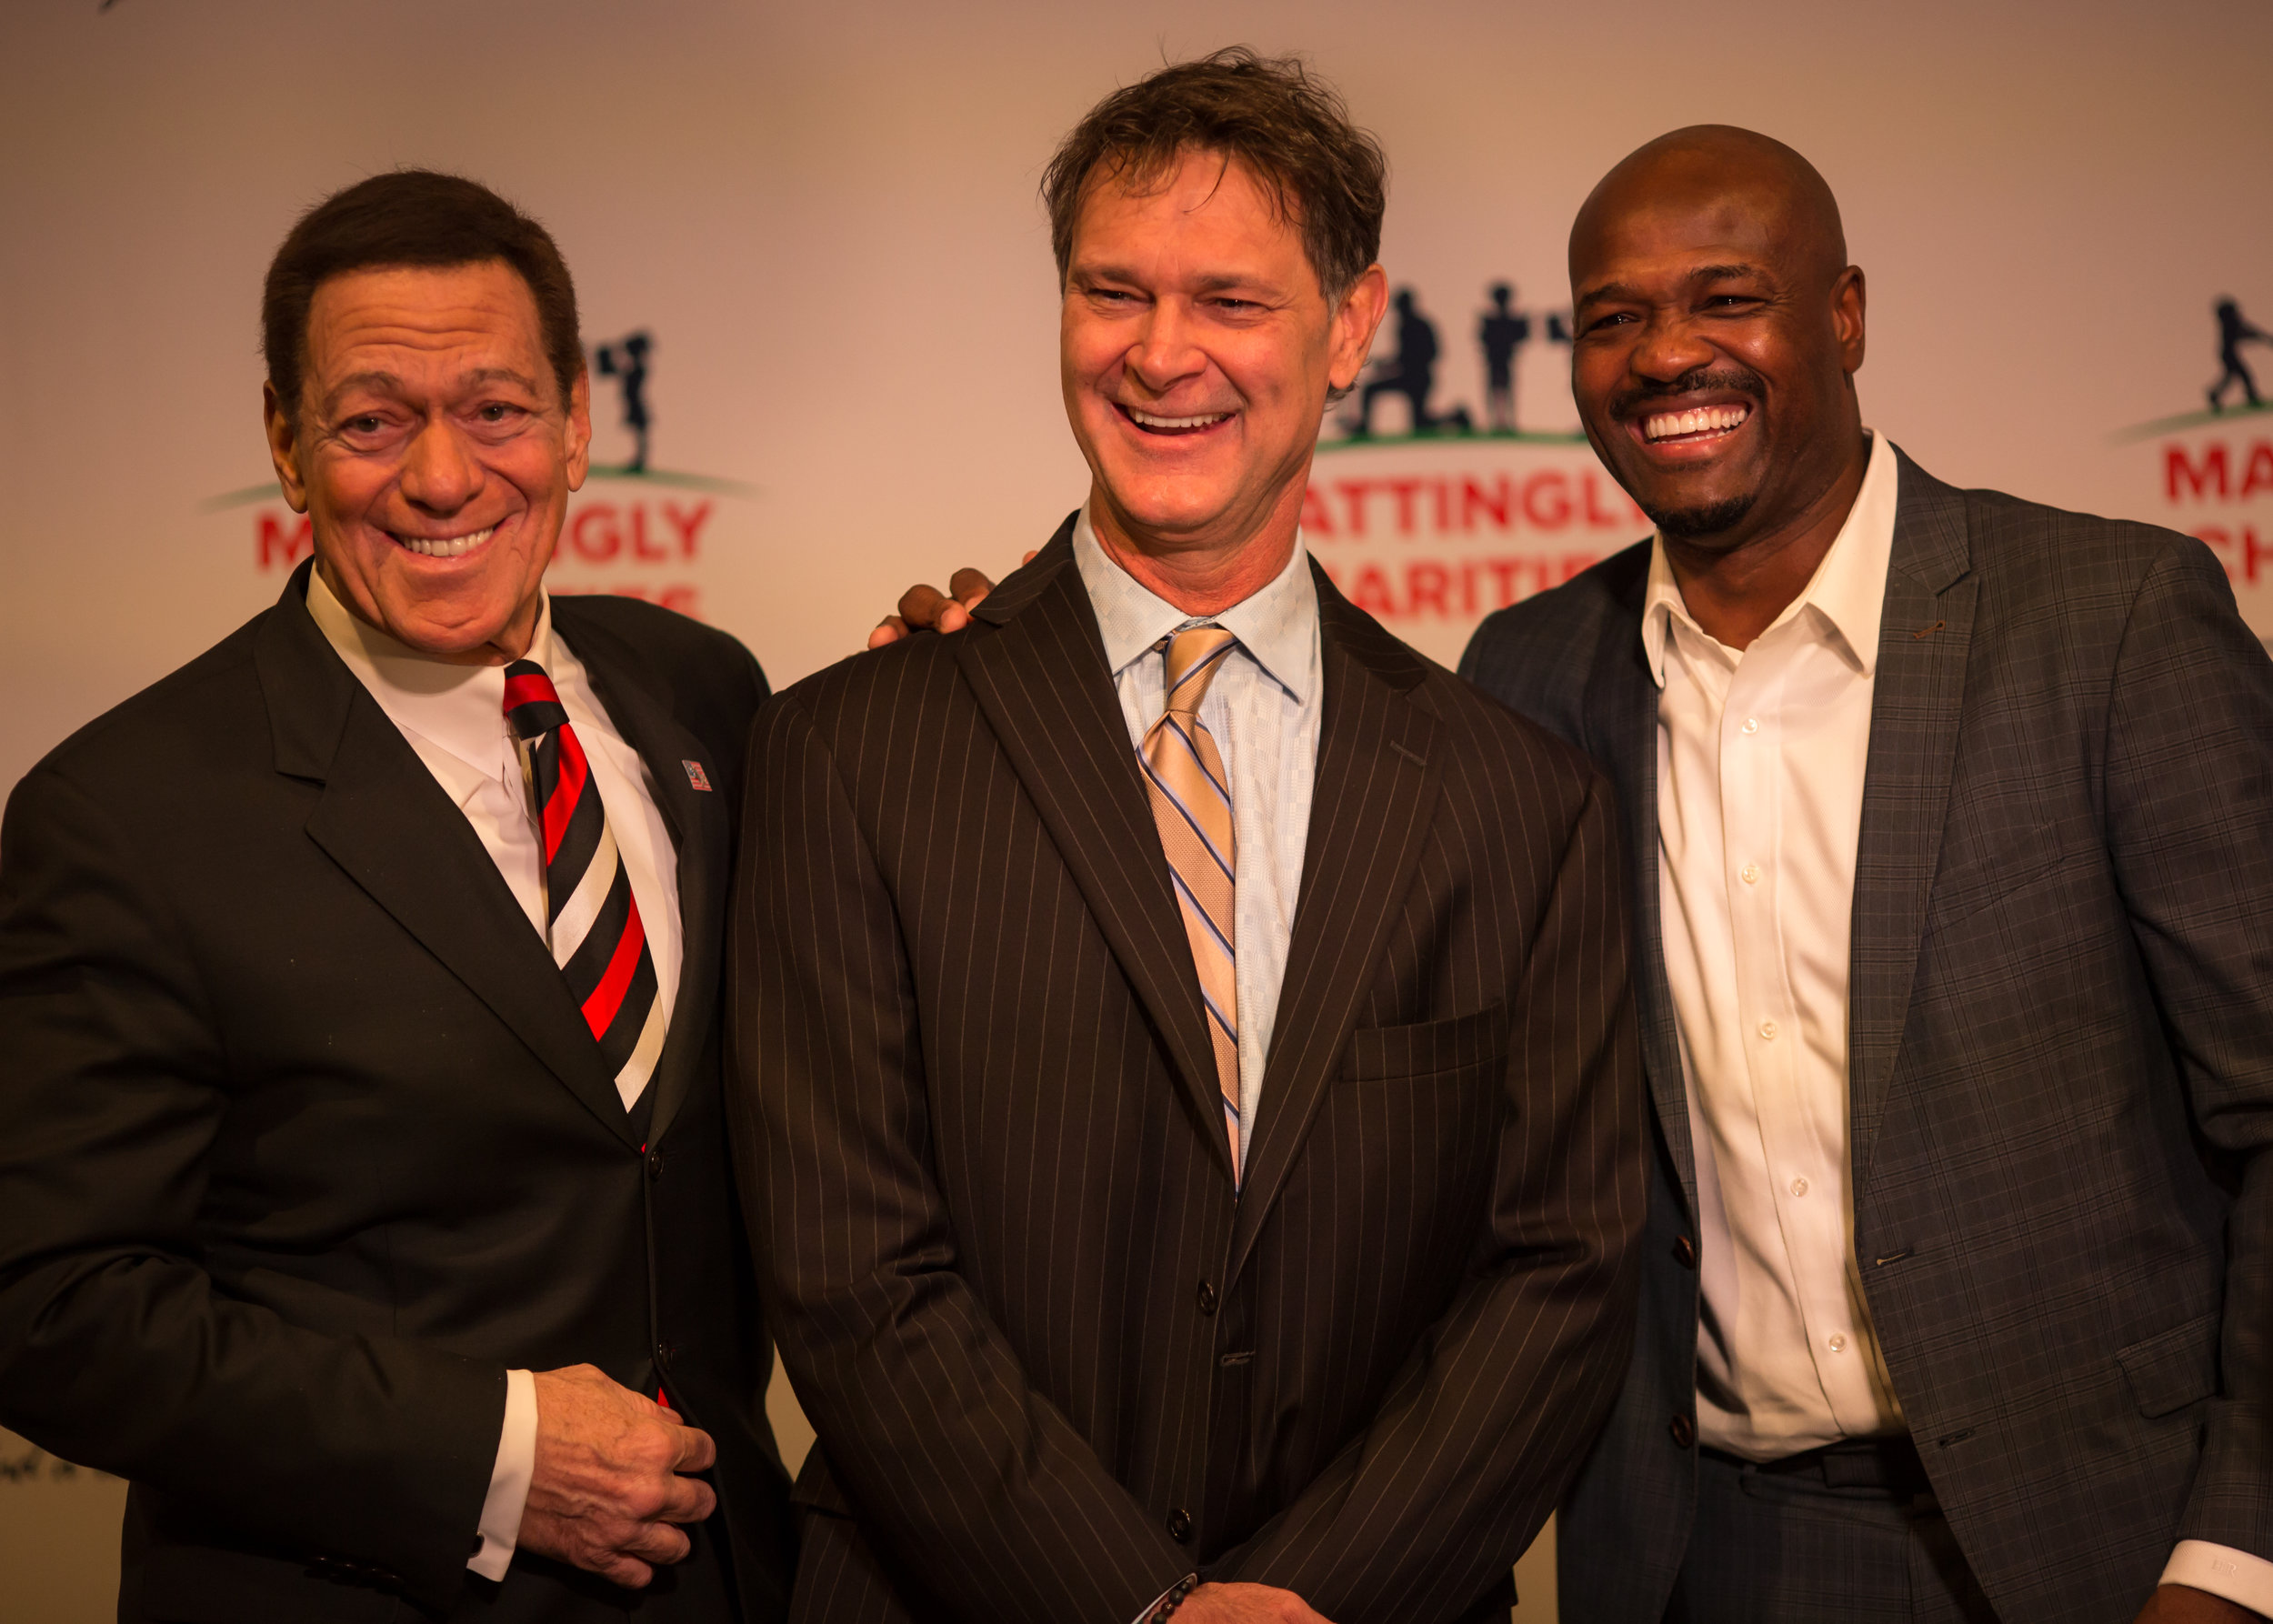 Joe Piscopo, Don Mattingly, and Harold Reynolds